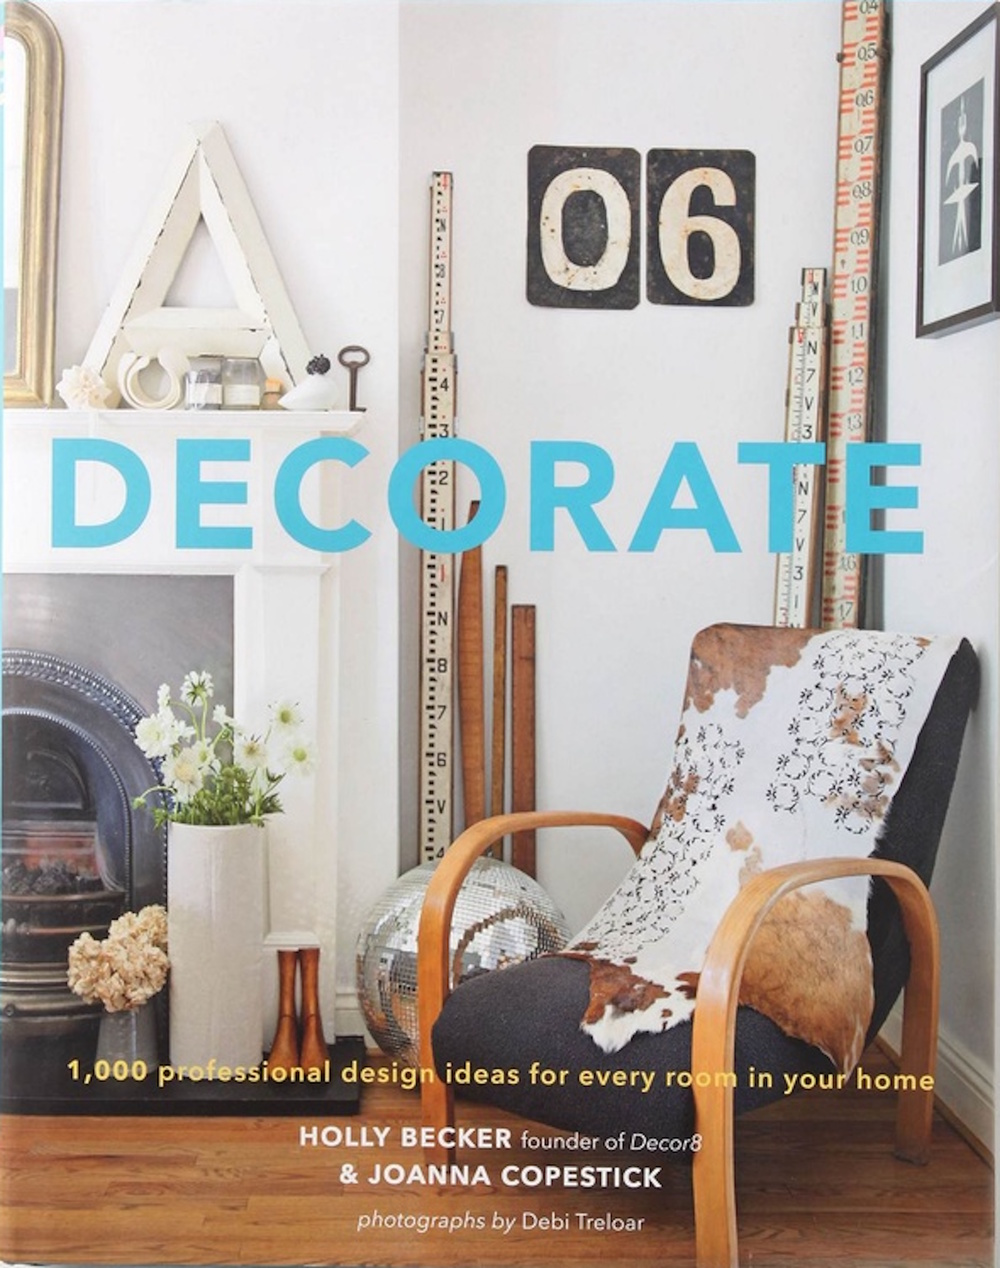 Decorate | Holly Becker + Joanna Copestick | Interior Design | www.foundandkept.com